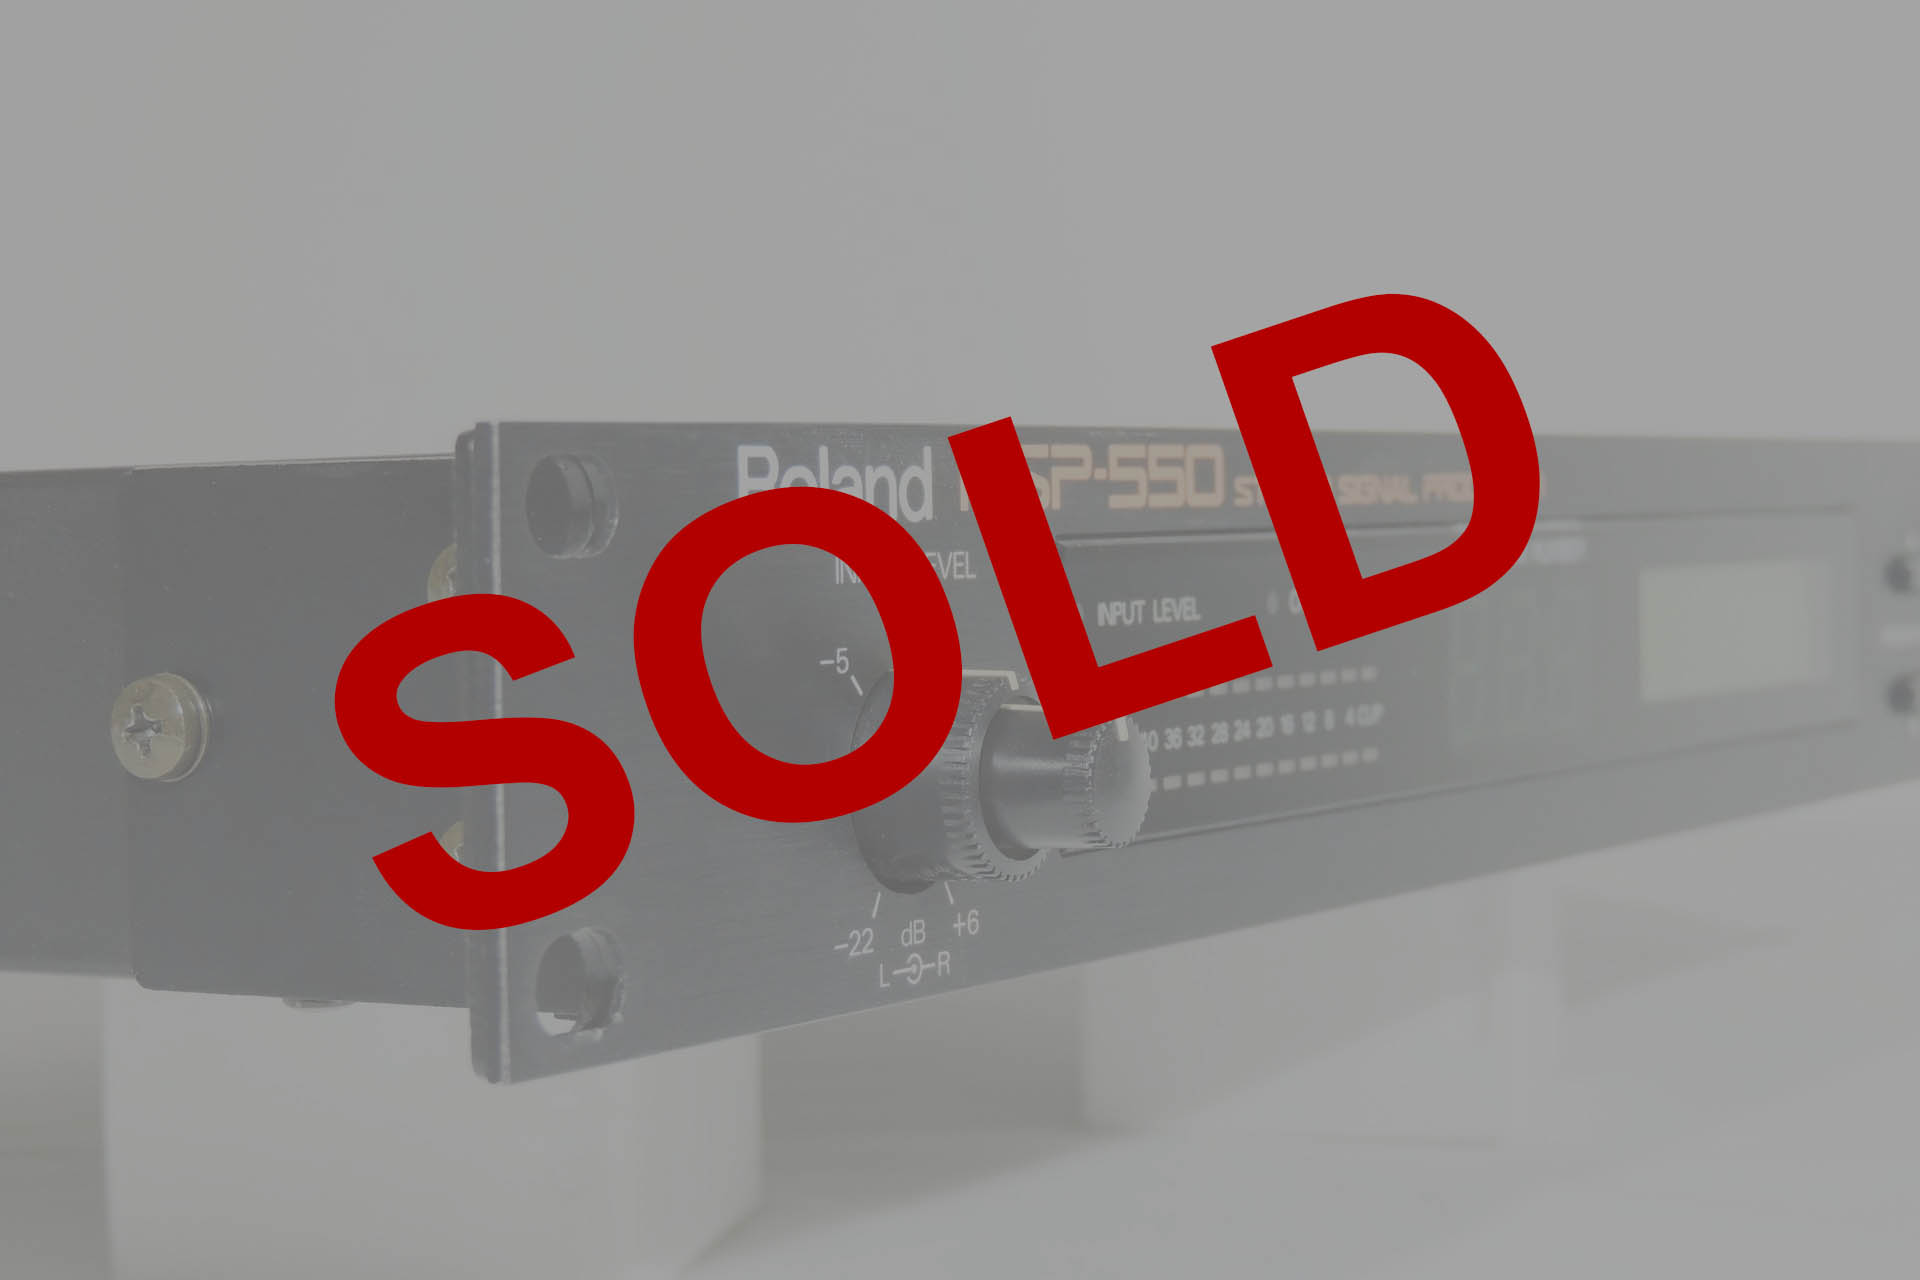 Roland RSP-550 sold at Plasma Music